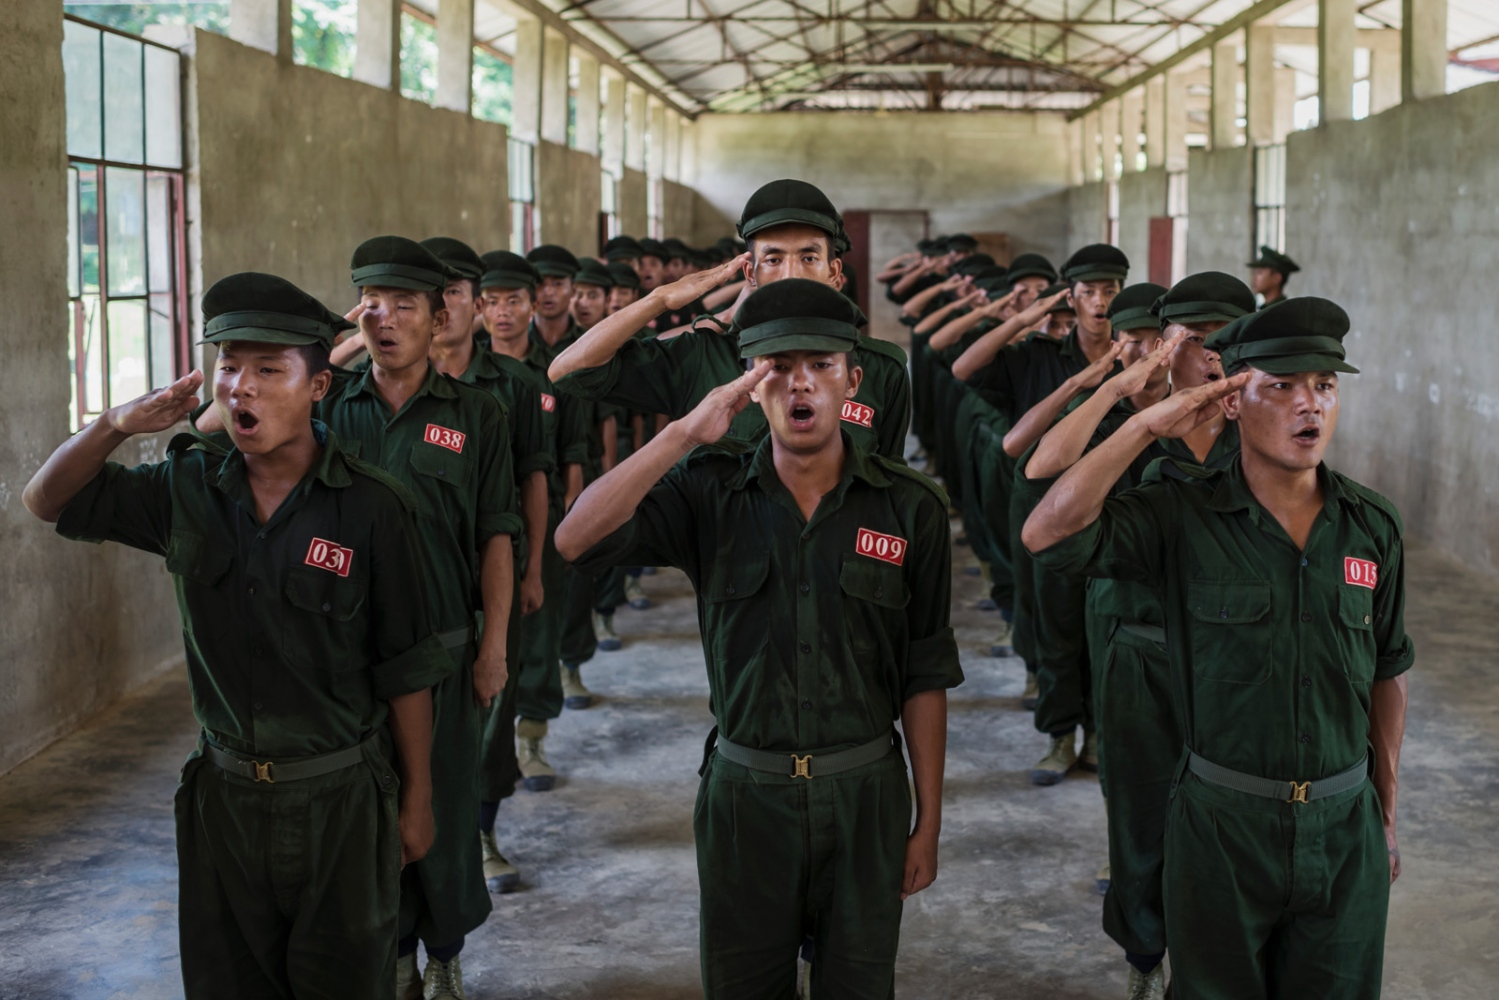 Recruits of the Kachin Independence Armys National Service during daily morning workout in Laiza, the K.I.A. headquarters in Kachin State, Myanmar.